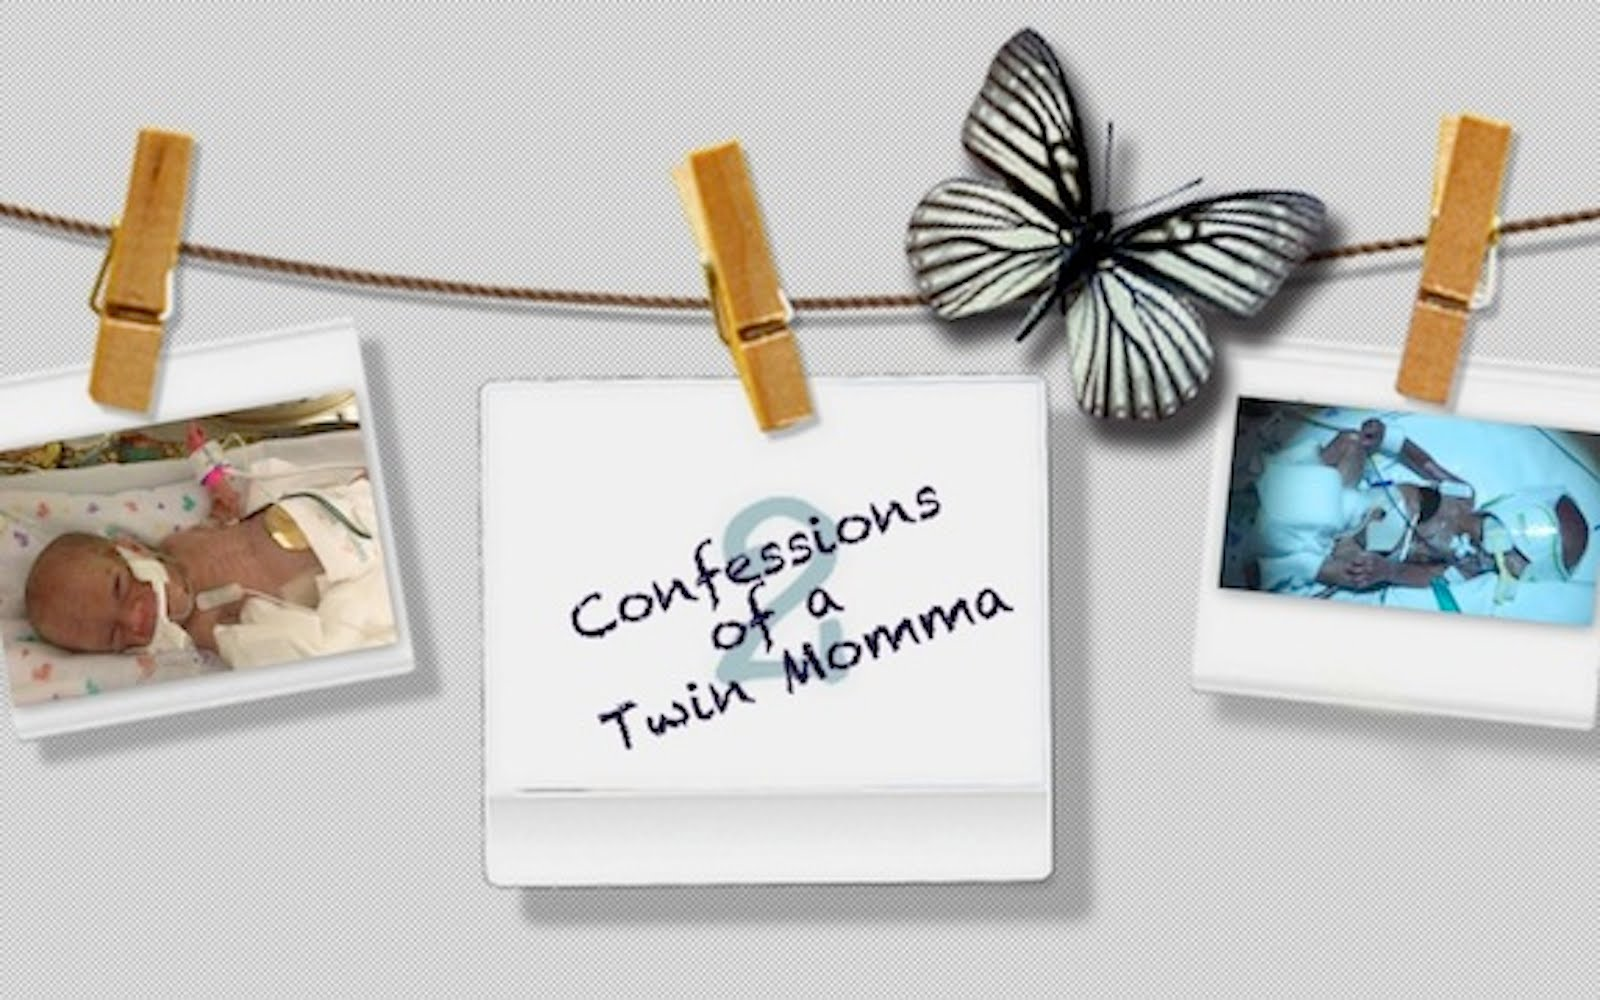 Confessions of a Twin Momma